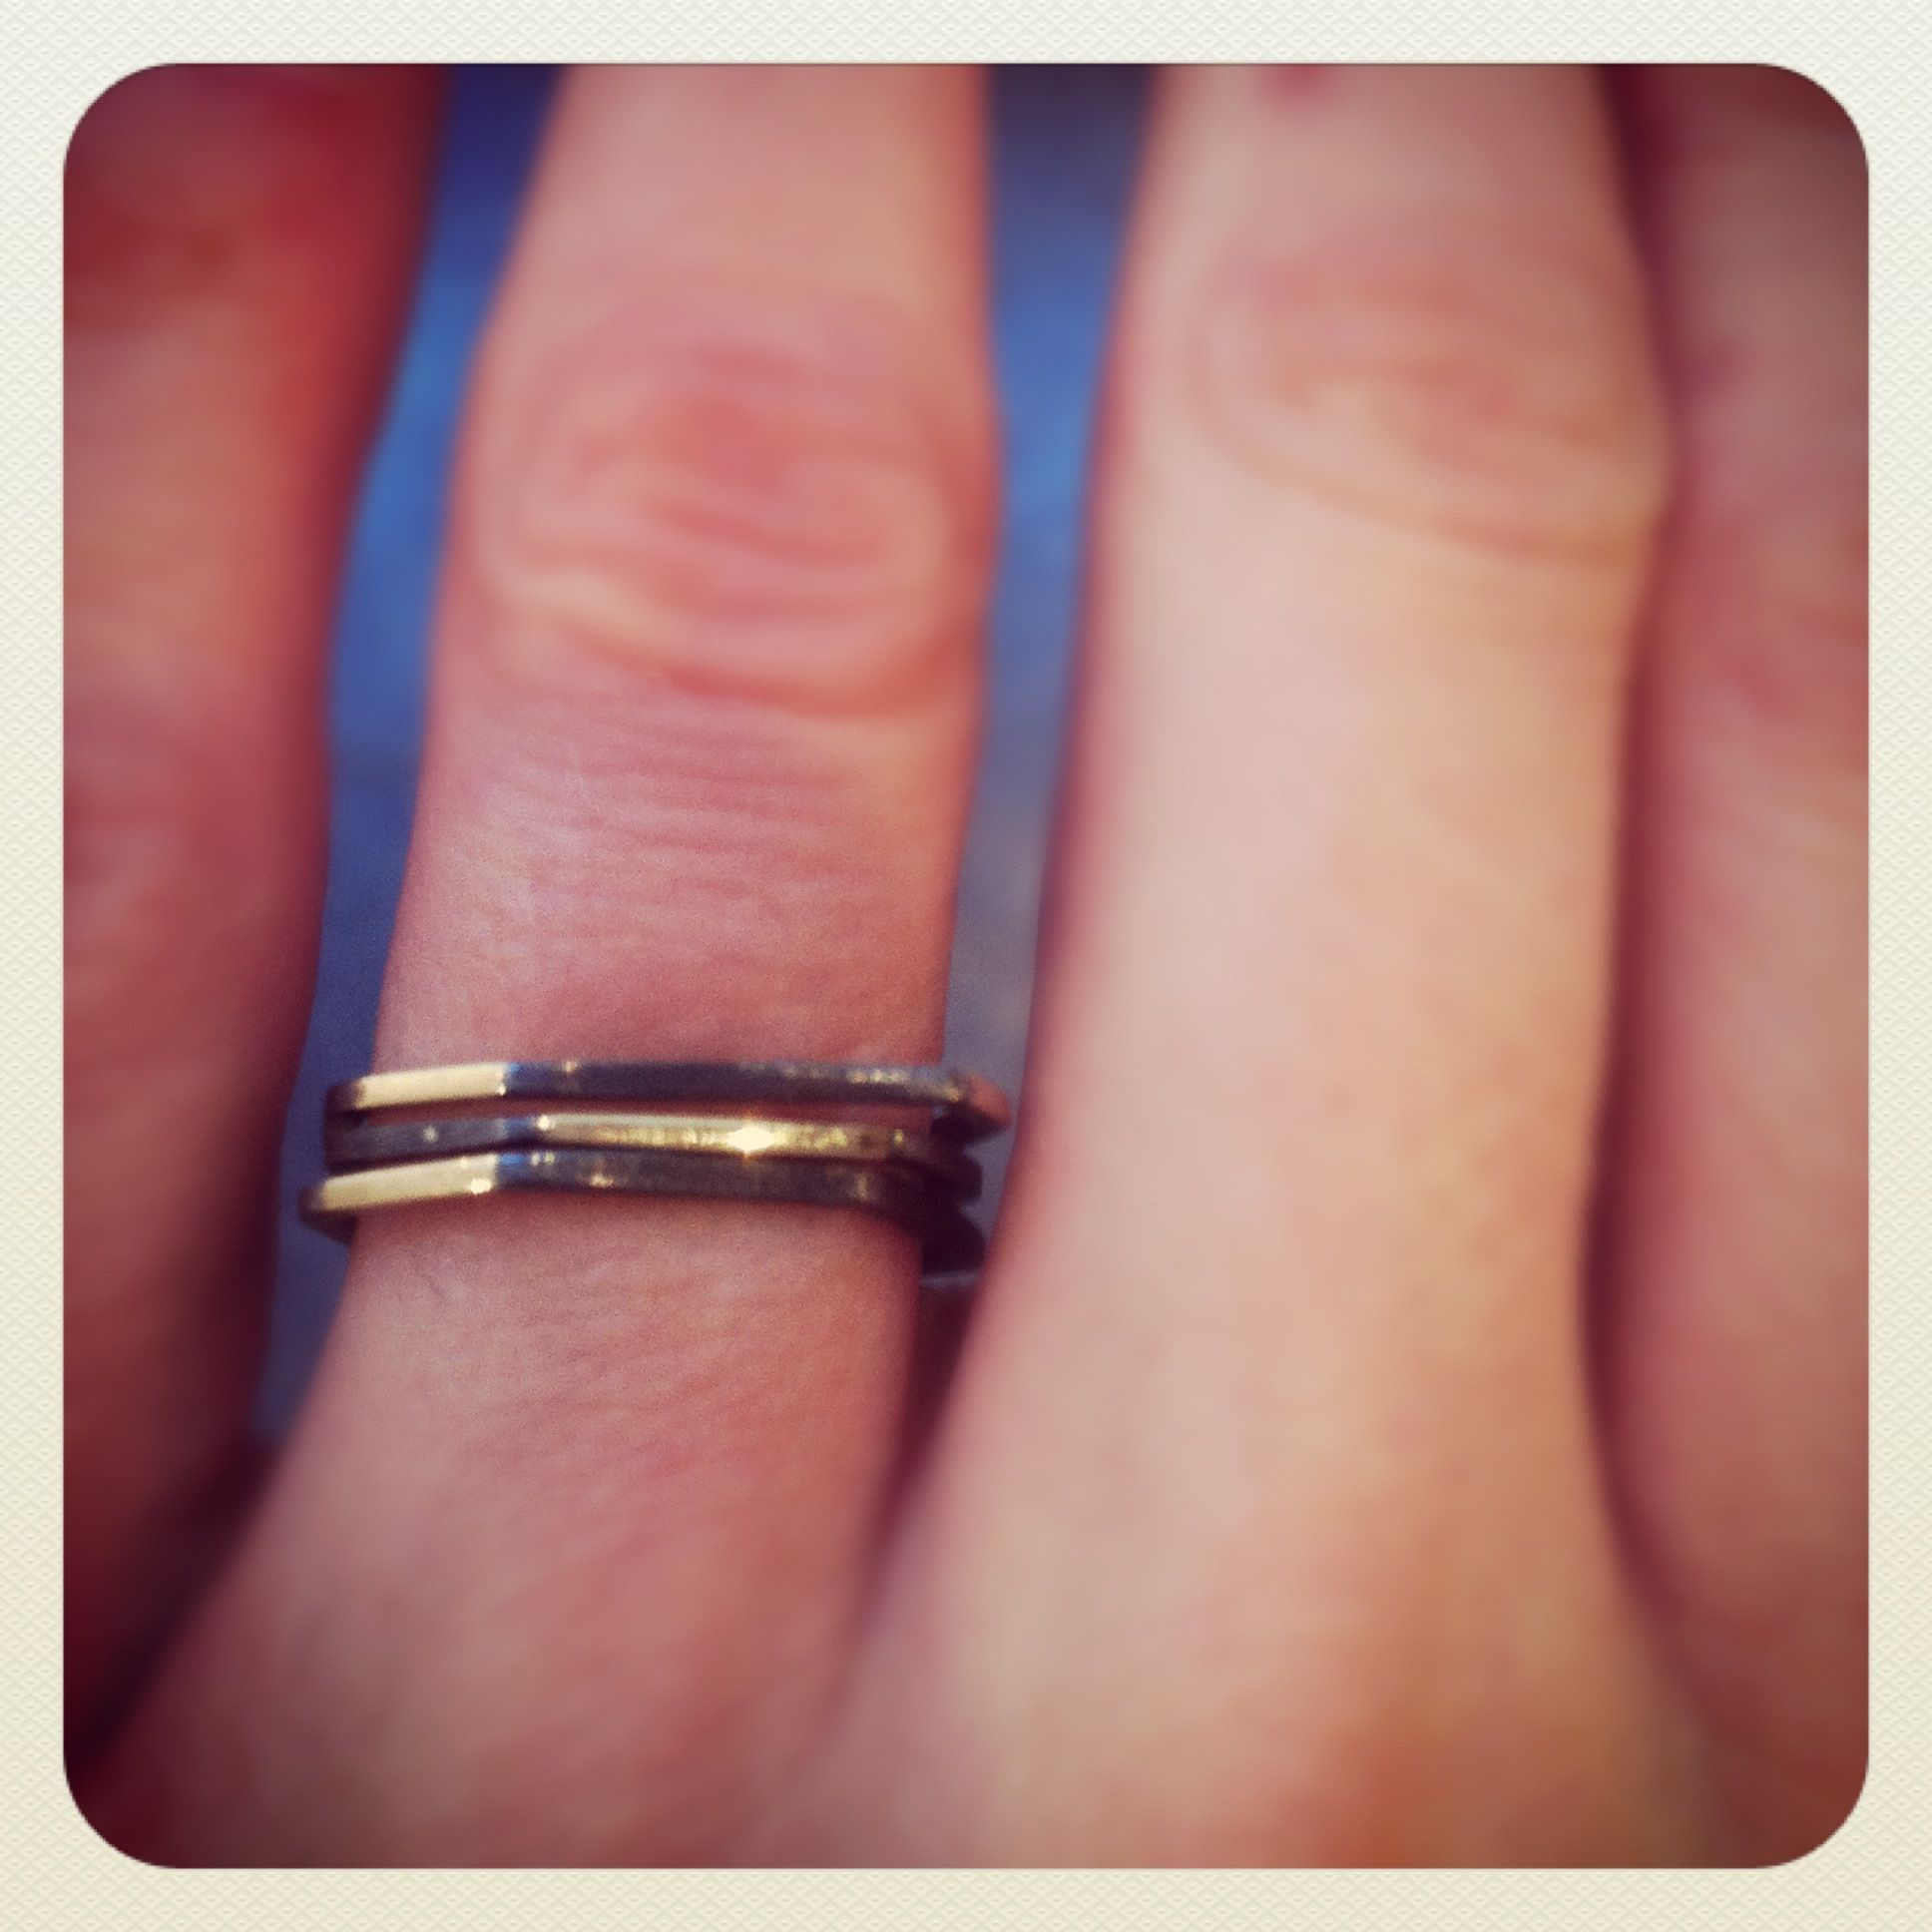 oblong rings | jewelry | Pinterest | Ring and Jewelry accessories